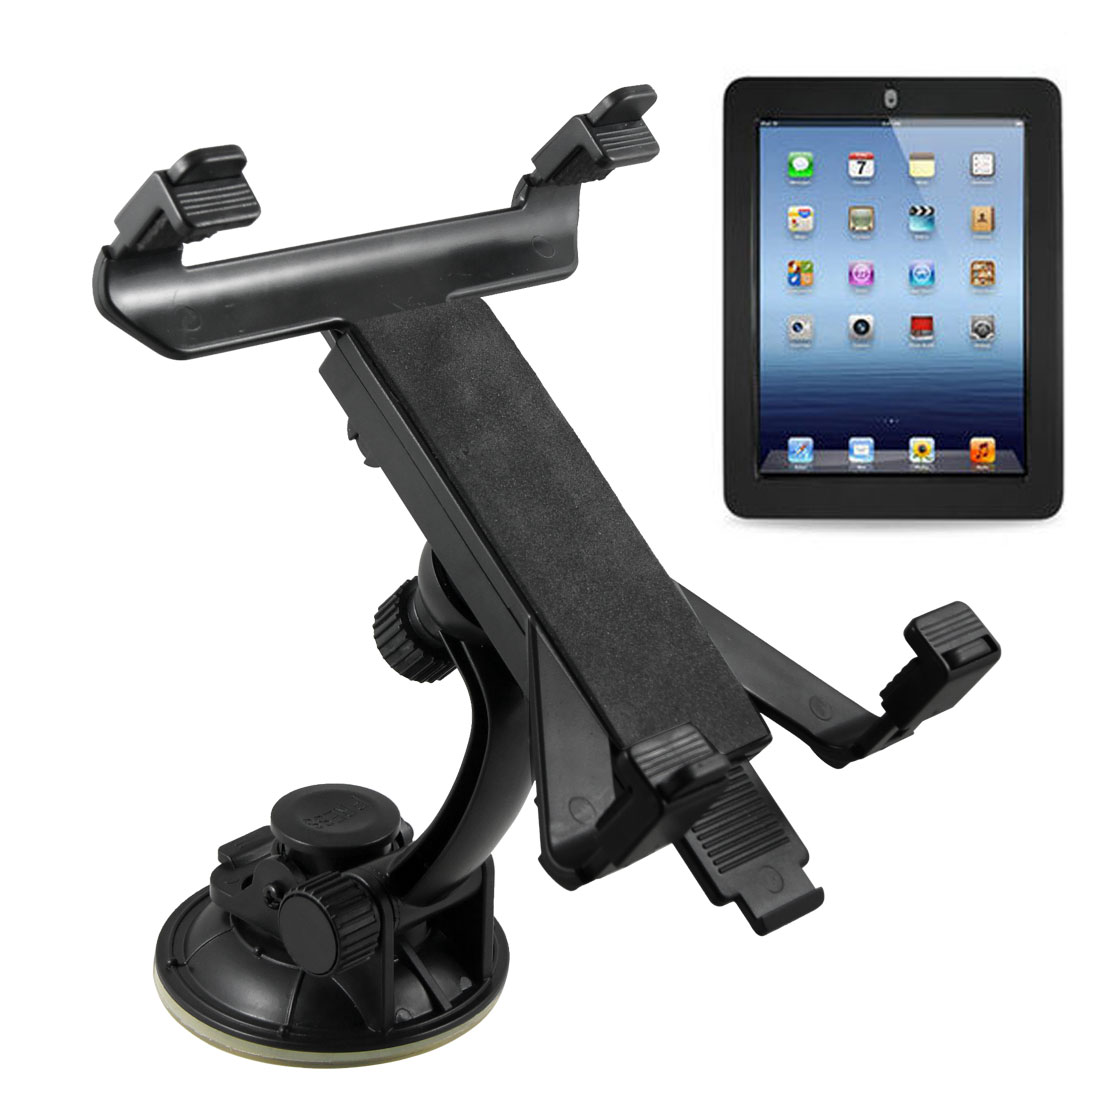 Car Holder Mount Stand Kit Crandle Windshield for Universal Tablet Apple iPad 1 2 3